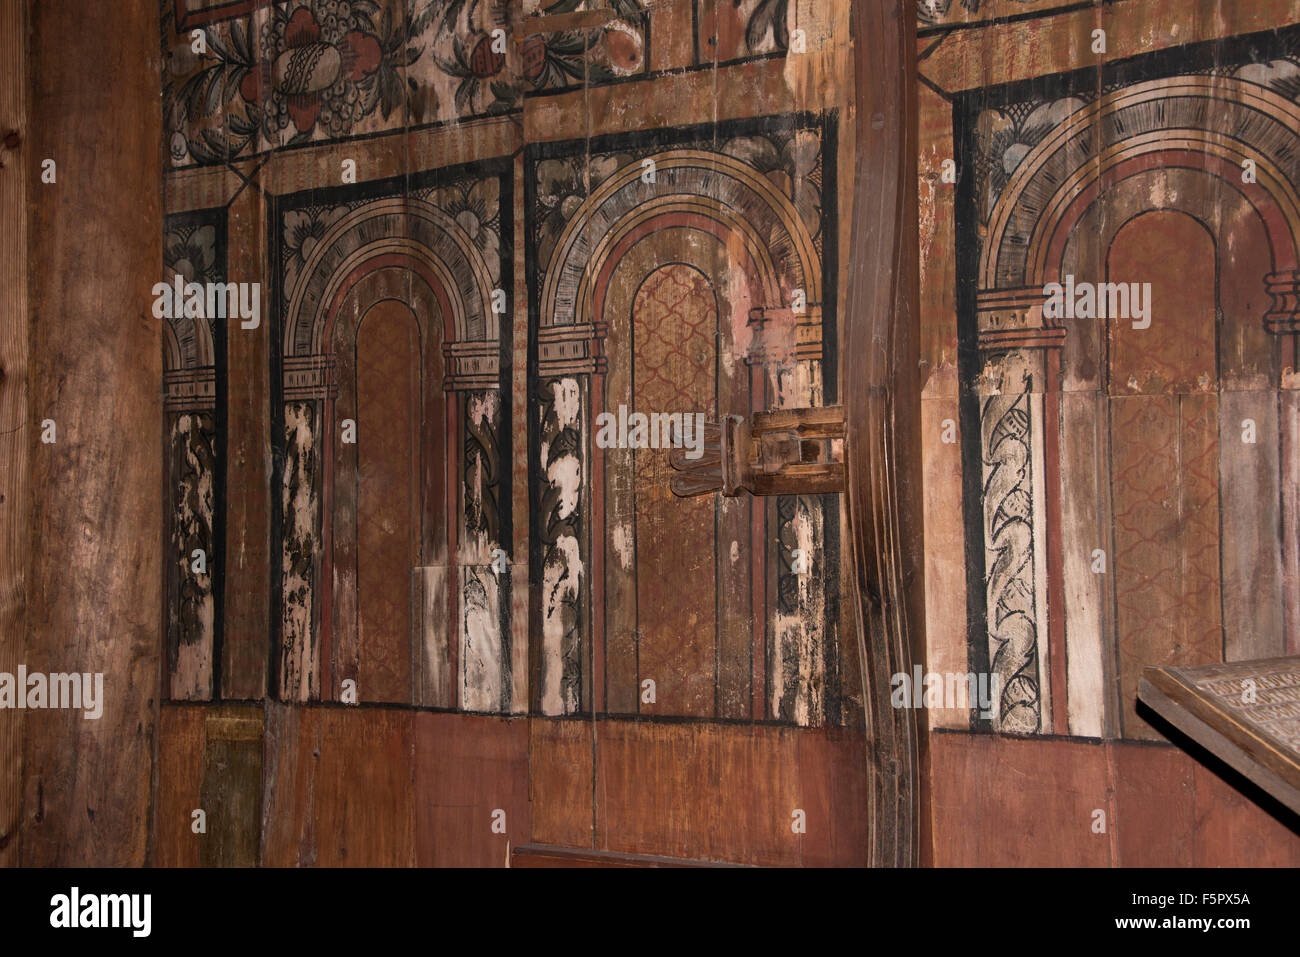 Norway, Oslo, Norsk Folk Museum (aka Norsk Folkemuseum). Historic wooden Stave Church from Gol, c.1200, Interior. - Stock Image